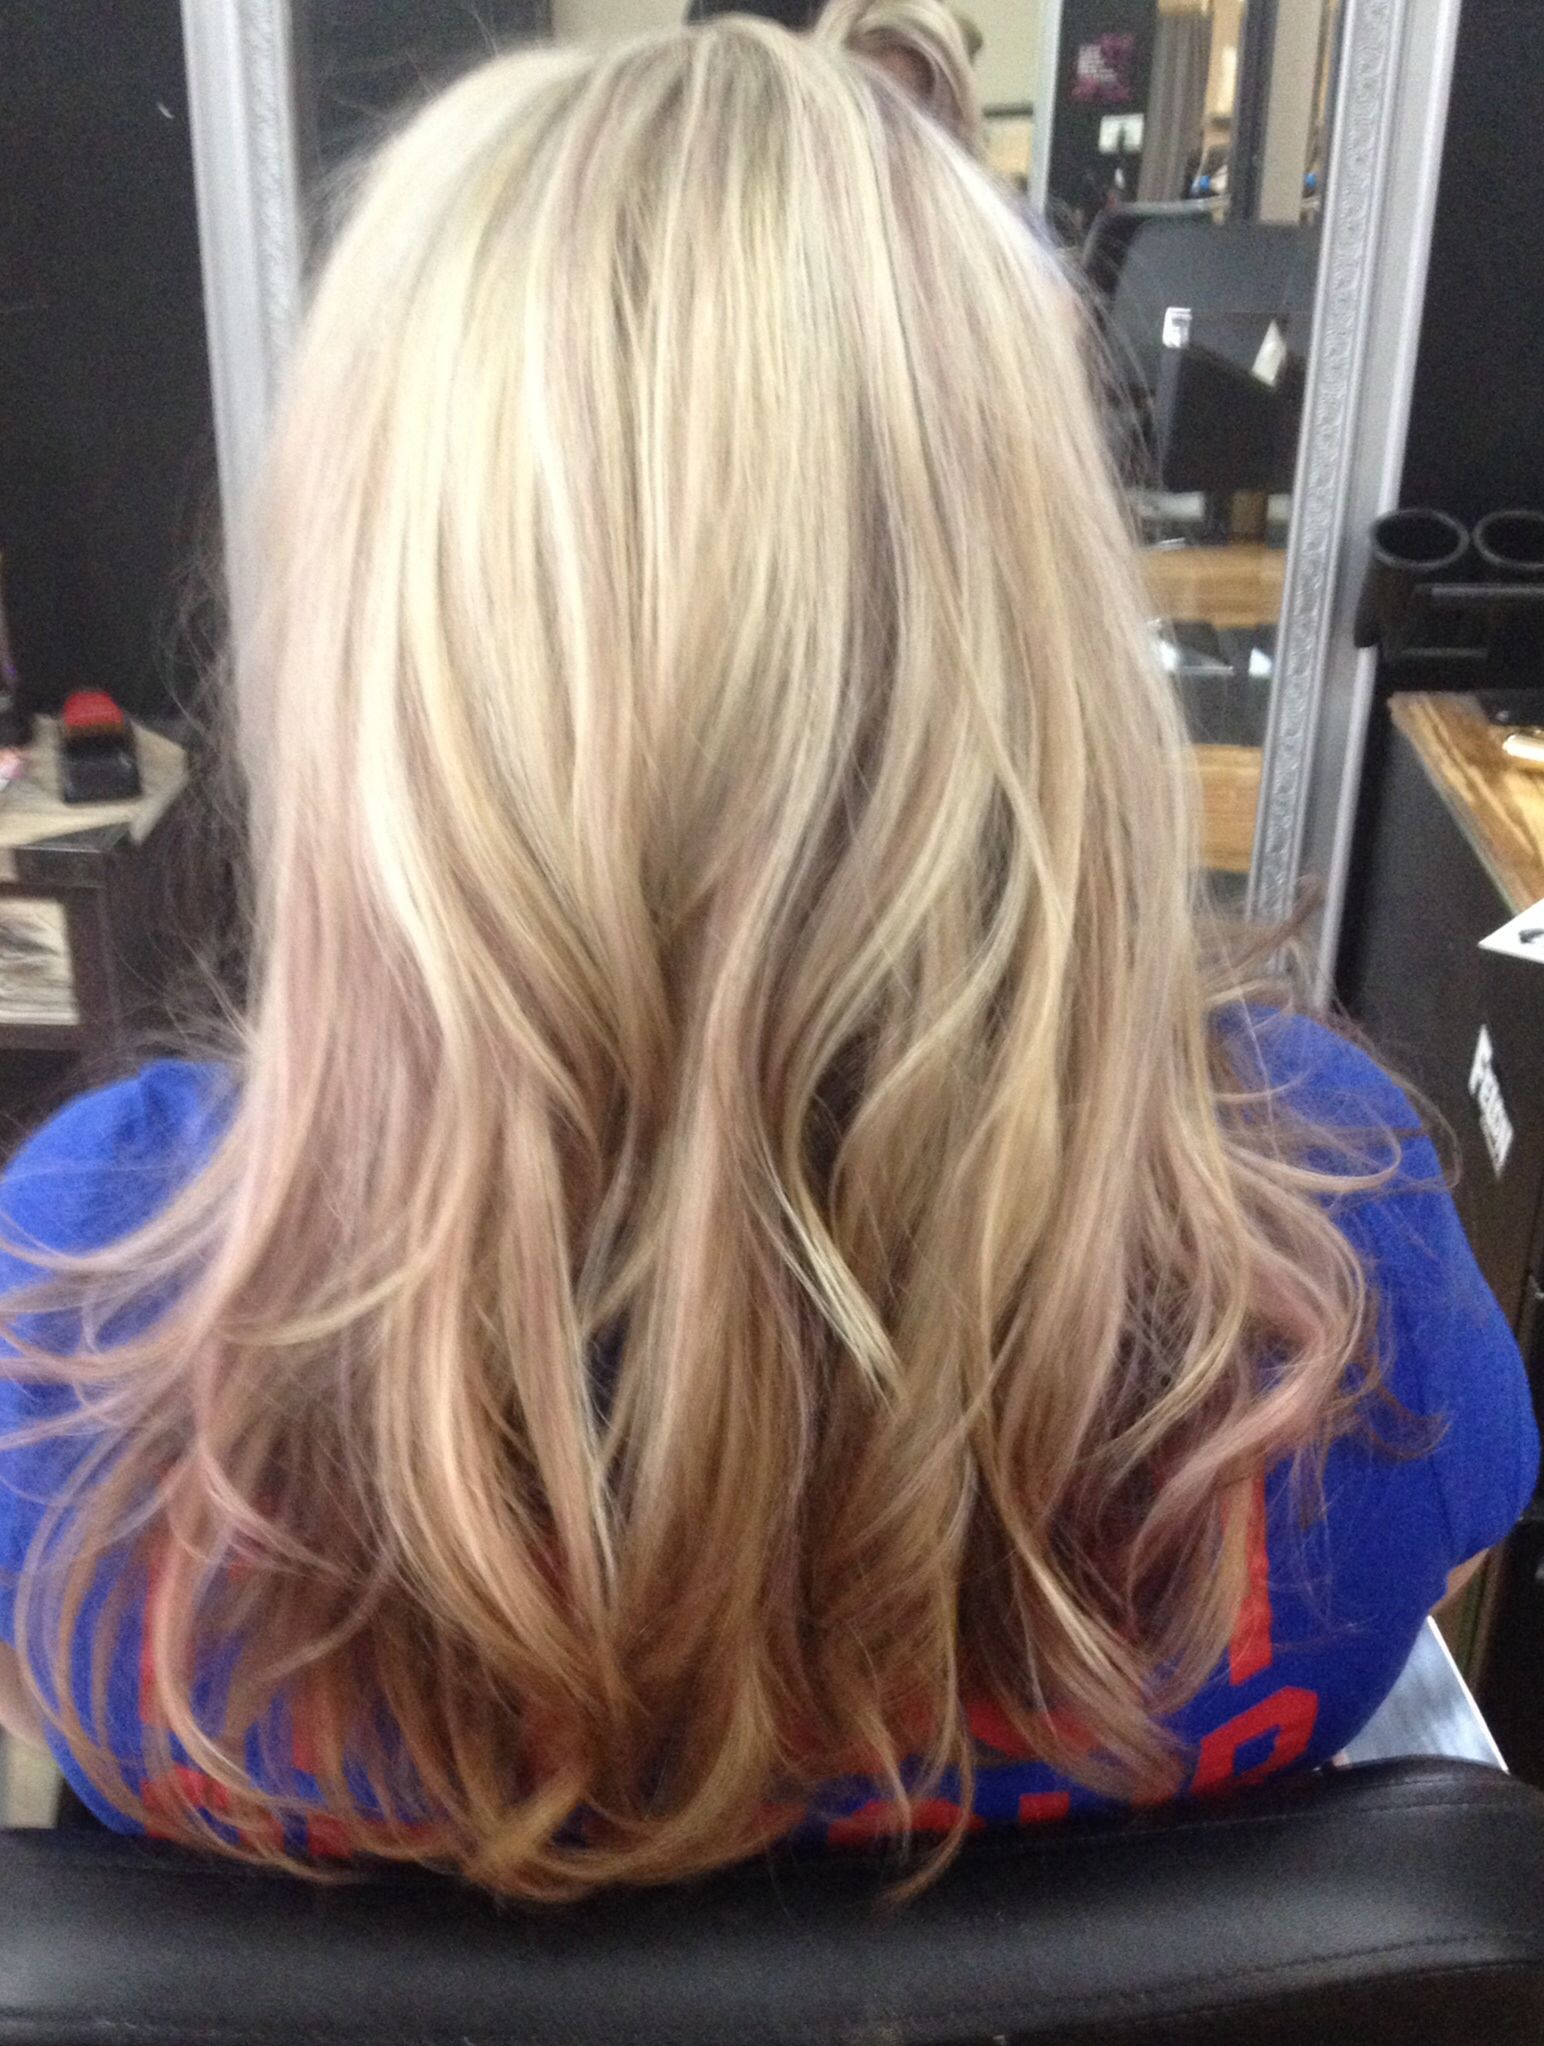 Blonde Highlights With Dark Brown Purple Tones No Filter Hair I